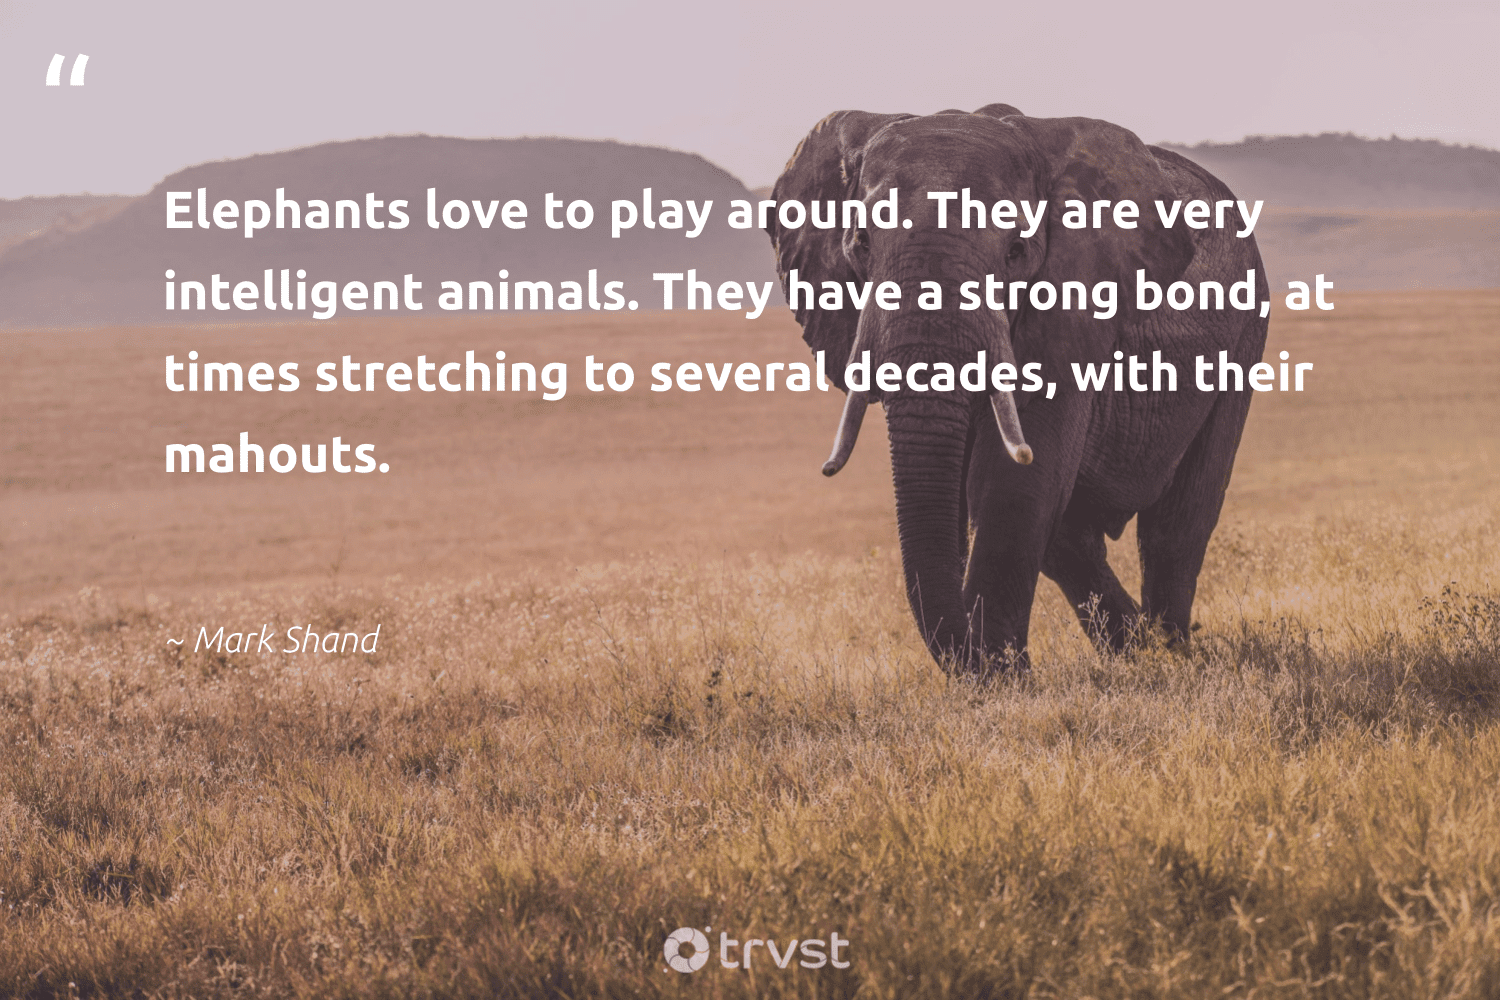 """""""Elephants love to play around. They are very intelligent animals. They have a strong bond, at times stretching to several decades, with their mahouts.""""  - Mark Shand #trvst #quotes #love #animals #elephants #animal #elephantlover #nature #socialchange #animallovers #endangered #geology"""